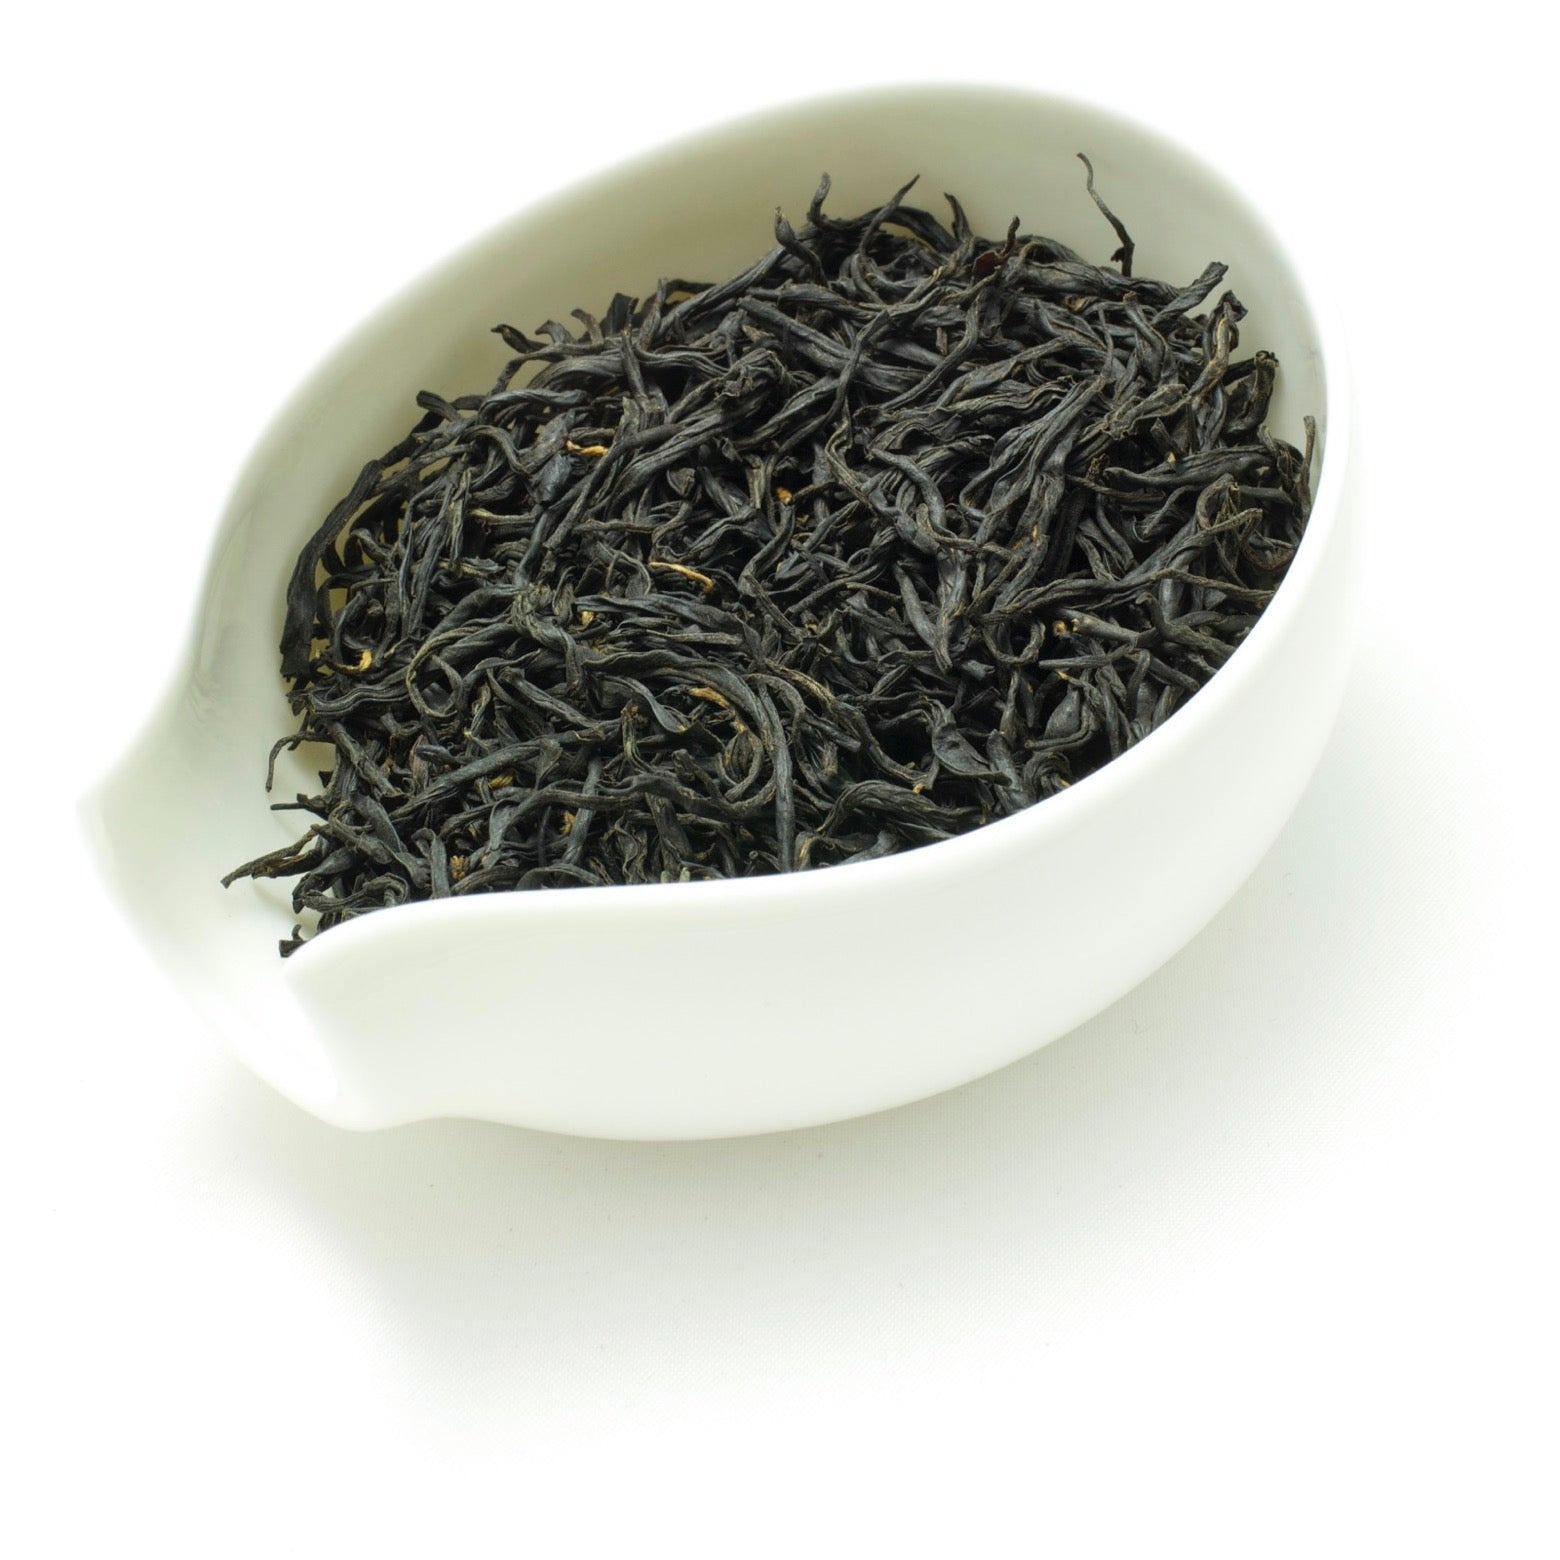 Black tea, Pu'er & dark tea